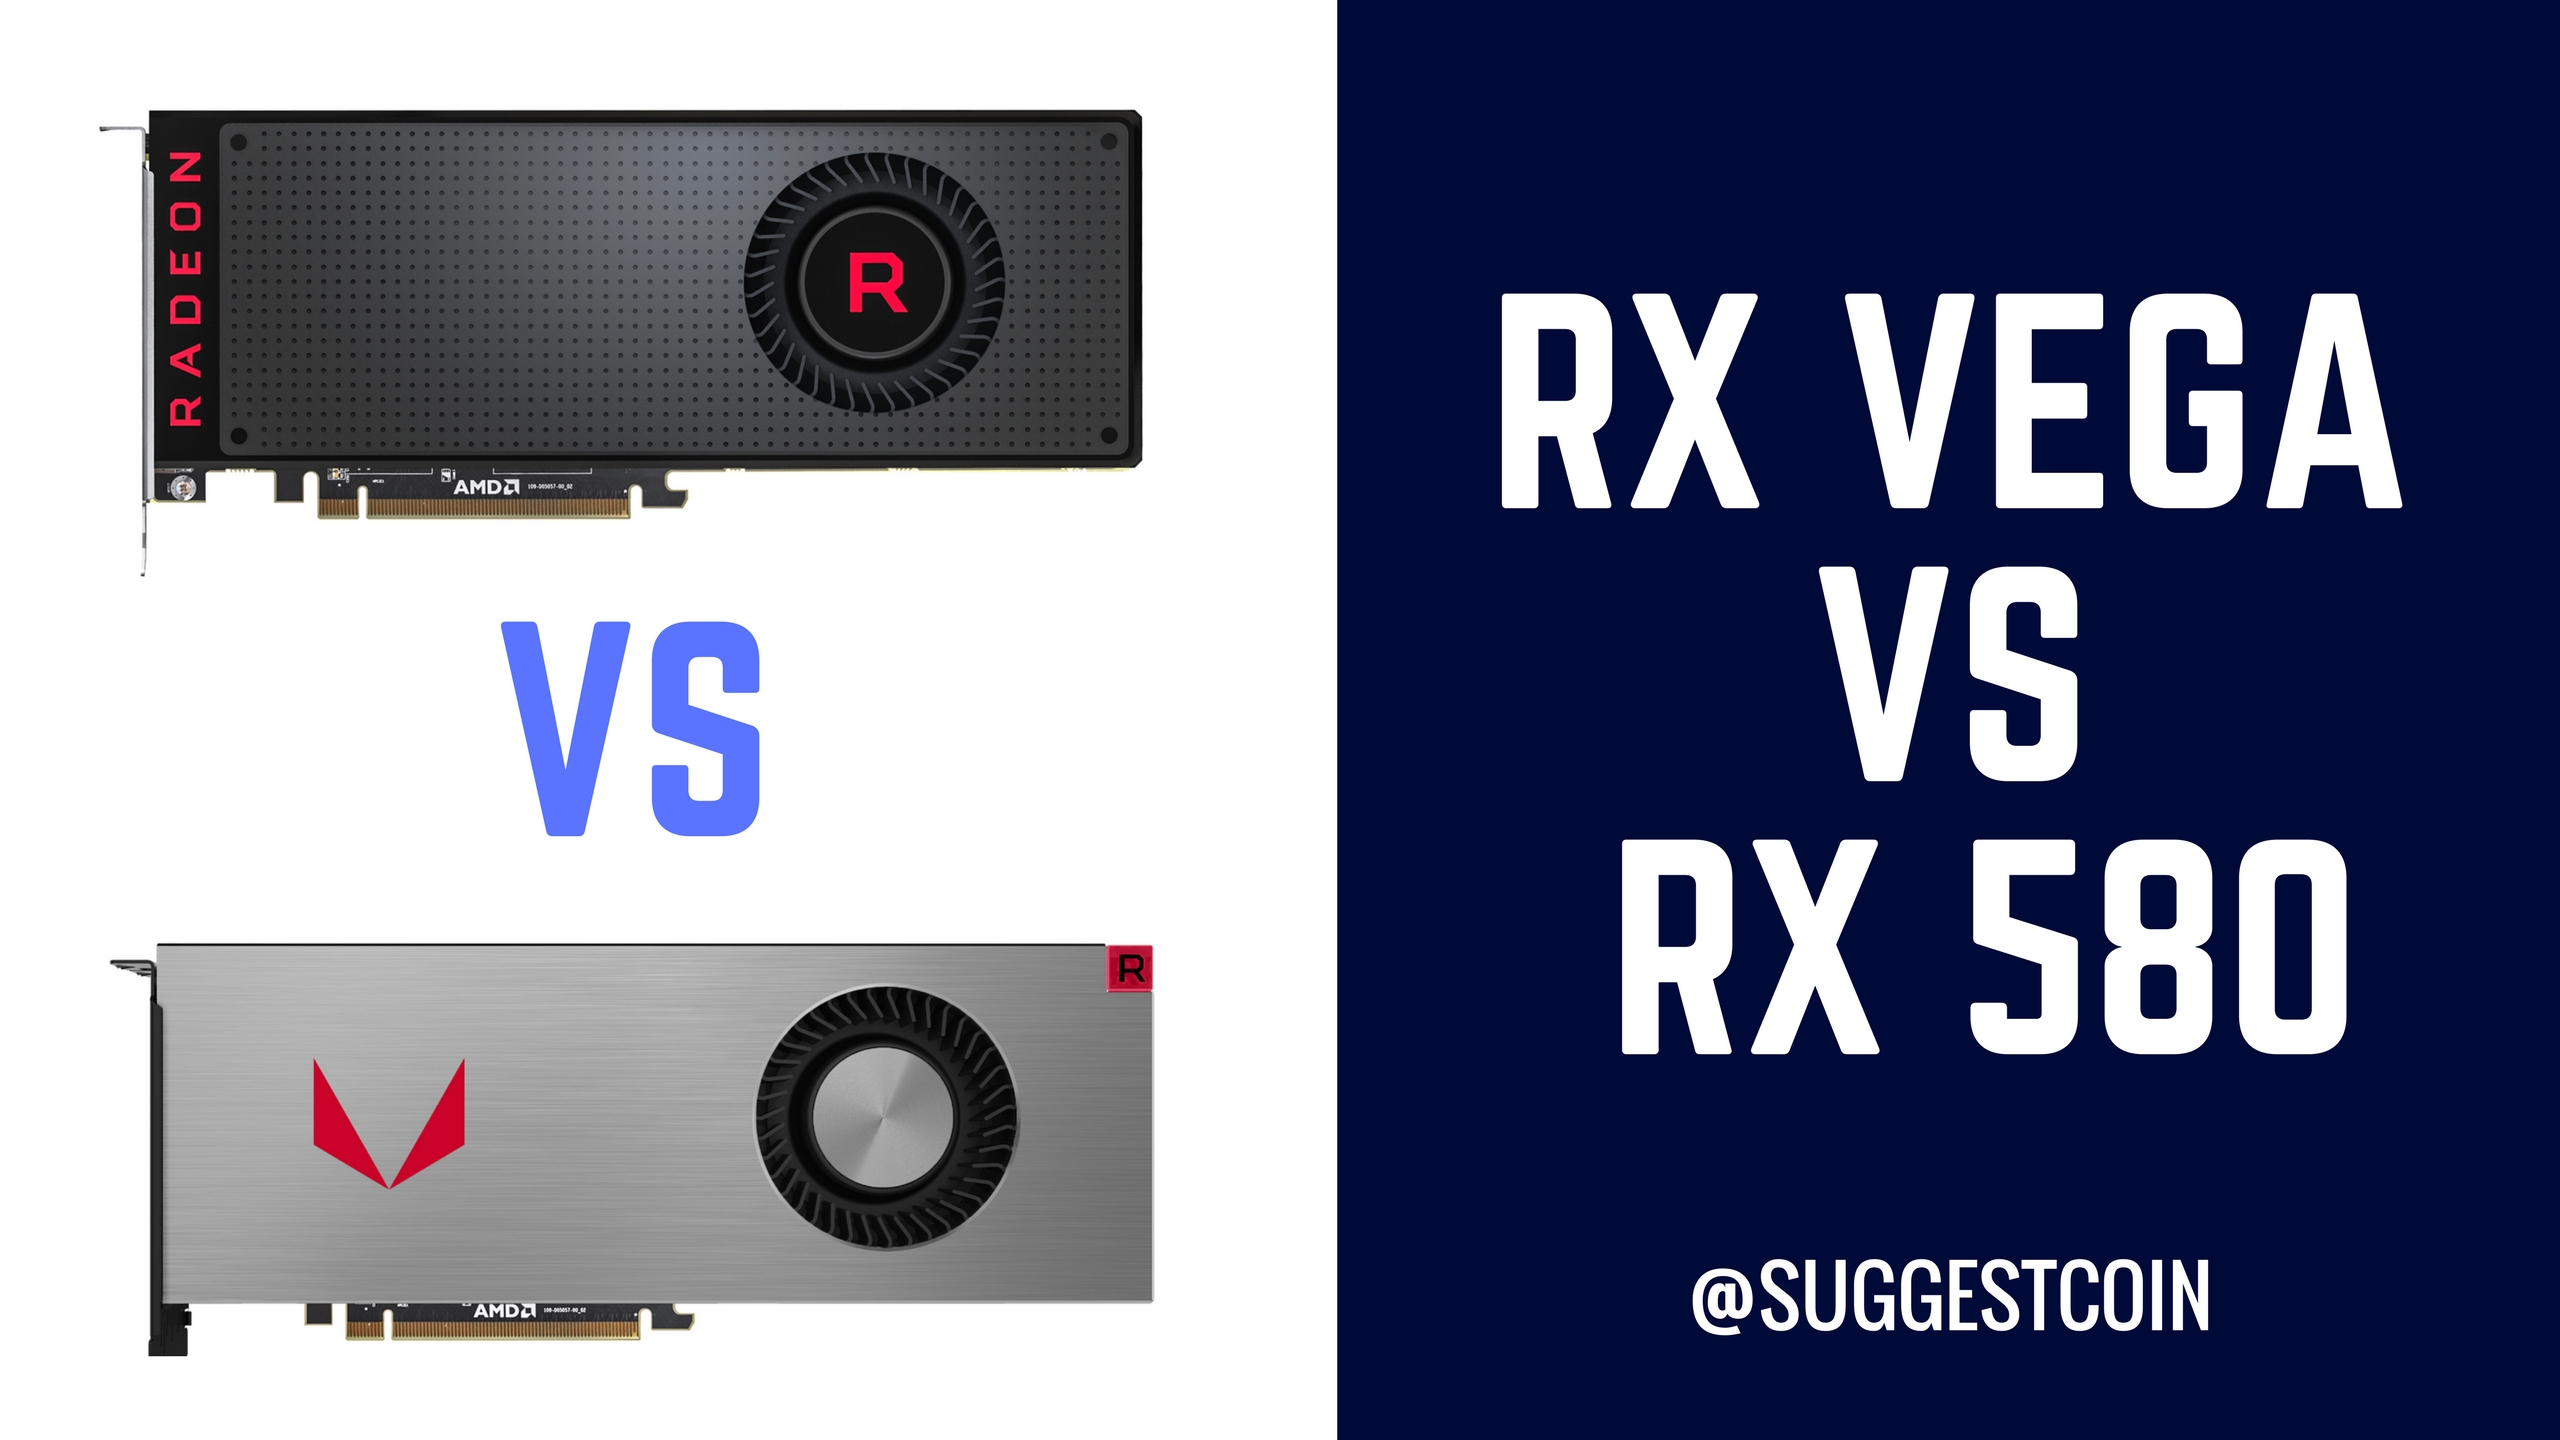 Rx Vega Vs Rx 580 Which One Should You Choose For Mining Coin Suggest